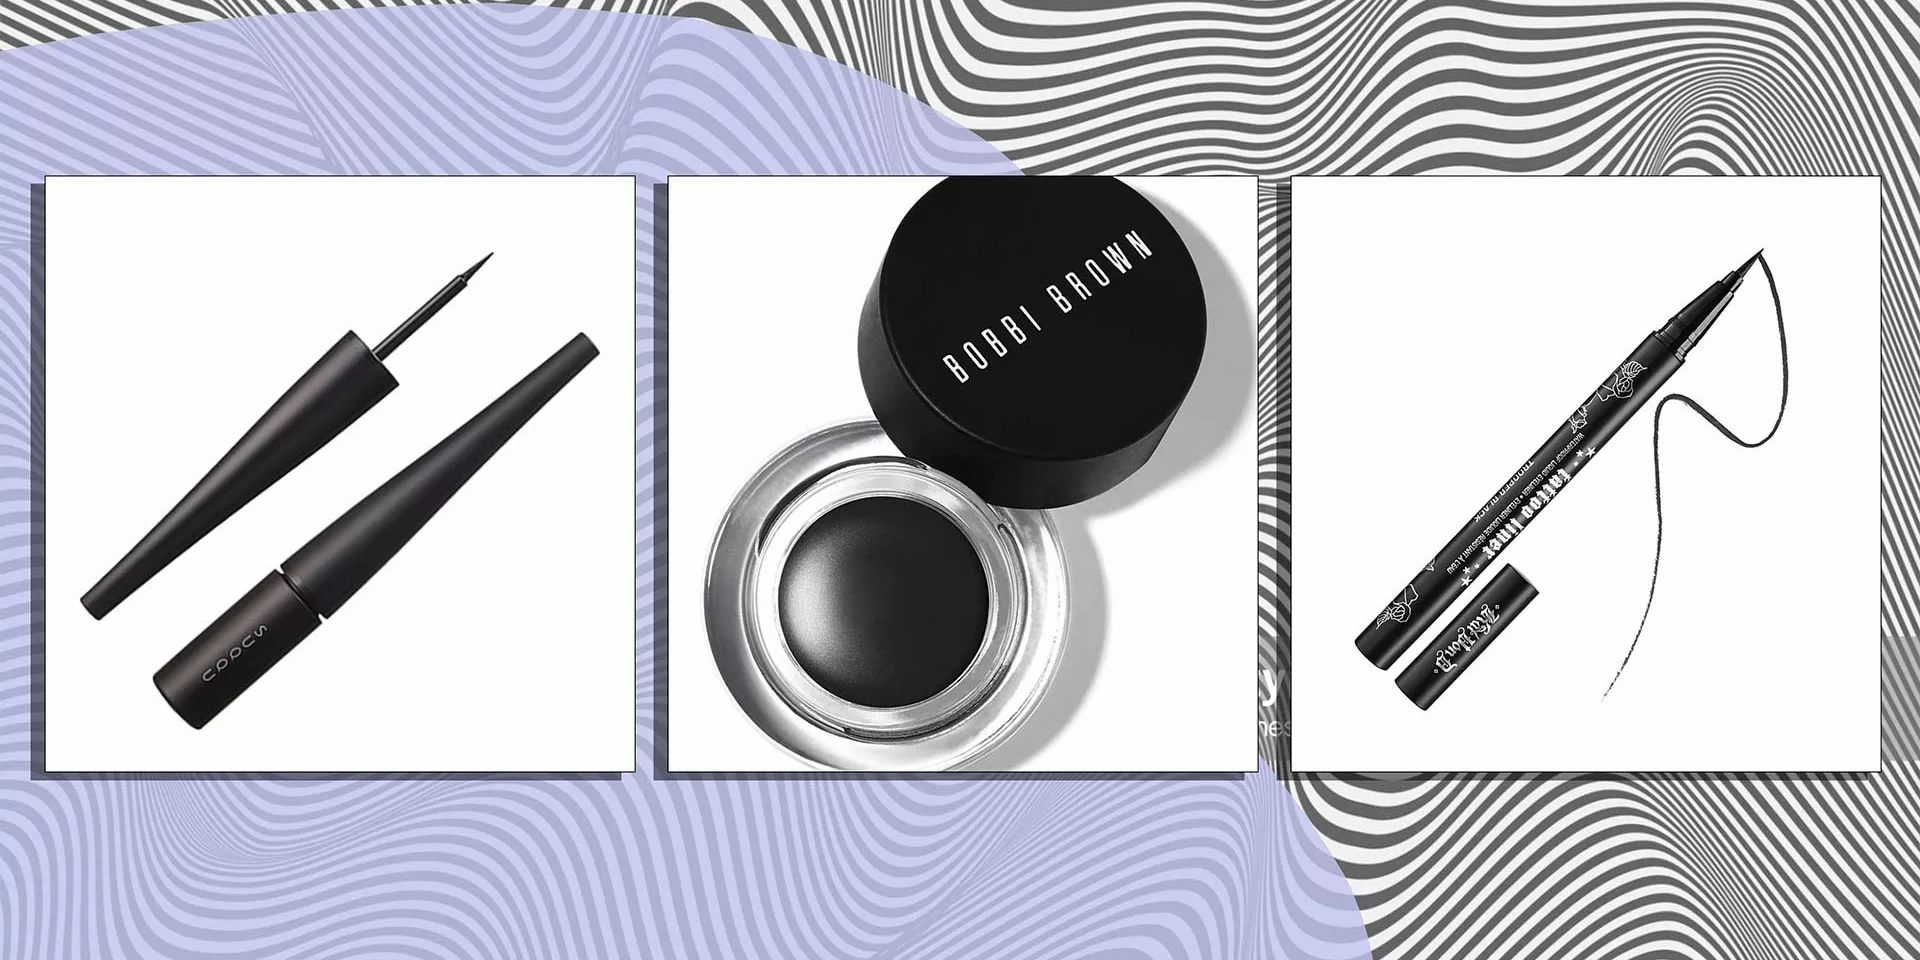 Best eyeliners: 5 expert picks to add to your makeup bag